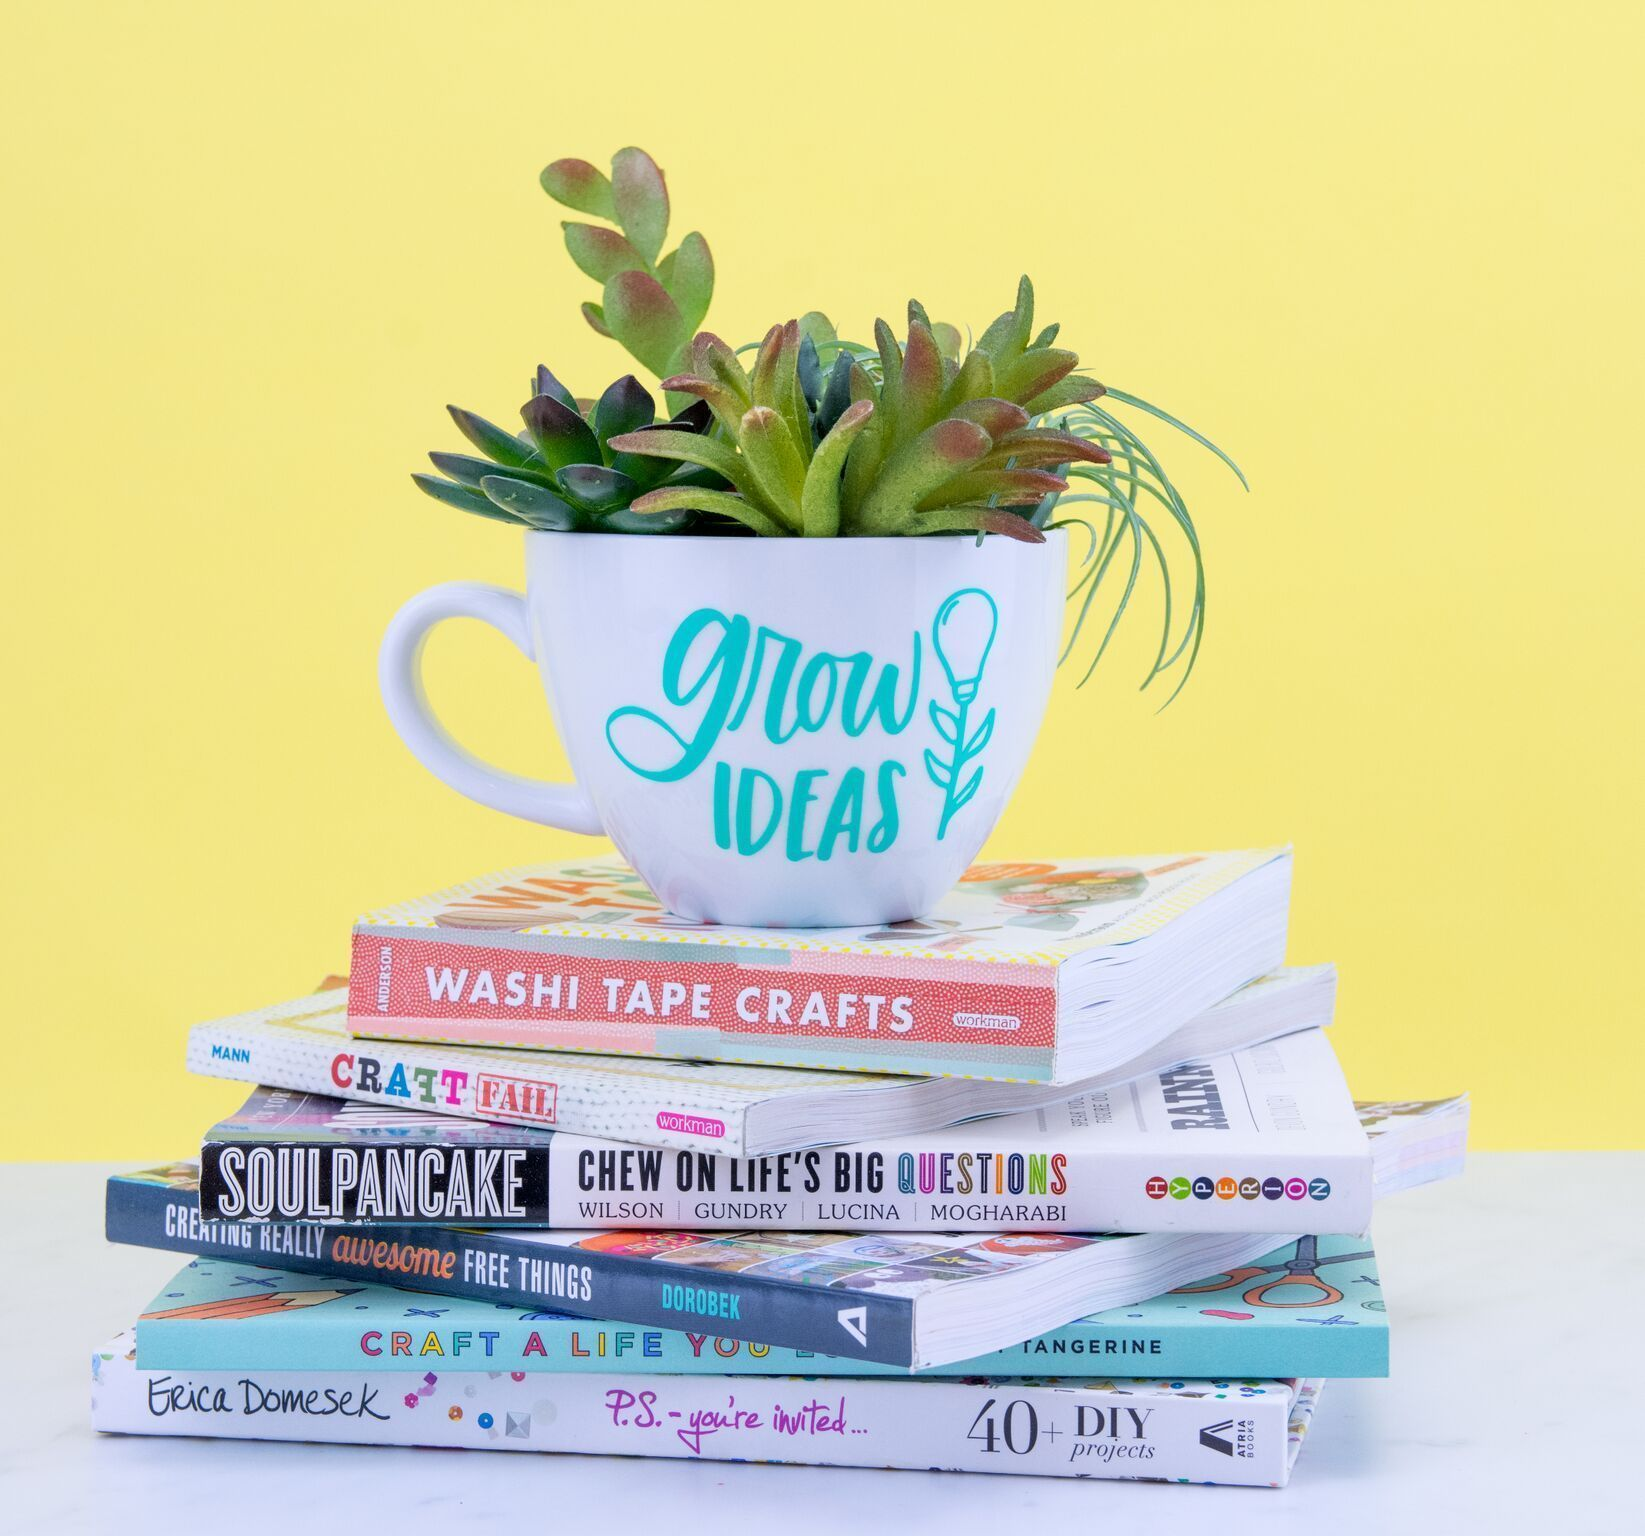 Planter - DIY Cricut Project I know we've made tons of terrariums for succulents on the blog but I don't know if we've ever made this. DIY Mug Succulent Planter - DIY Cricut Project.I know we've made tons of terrariums for succulents on the blog but I don't know if we've ever made this. DIY Mug Succulent Planter - DIY Cricut Project.Succulent Planter - DIY C...